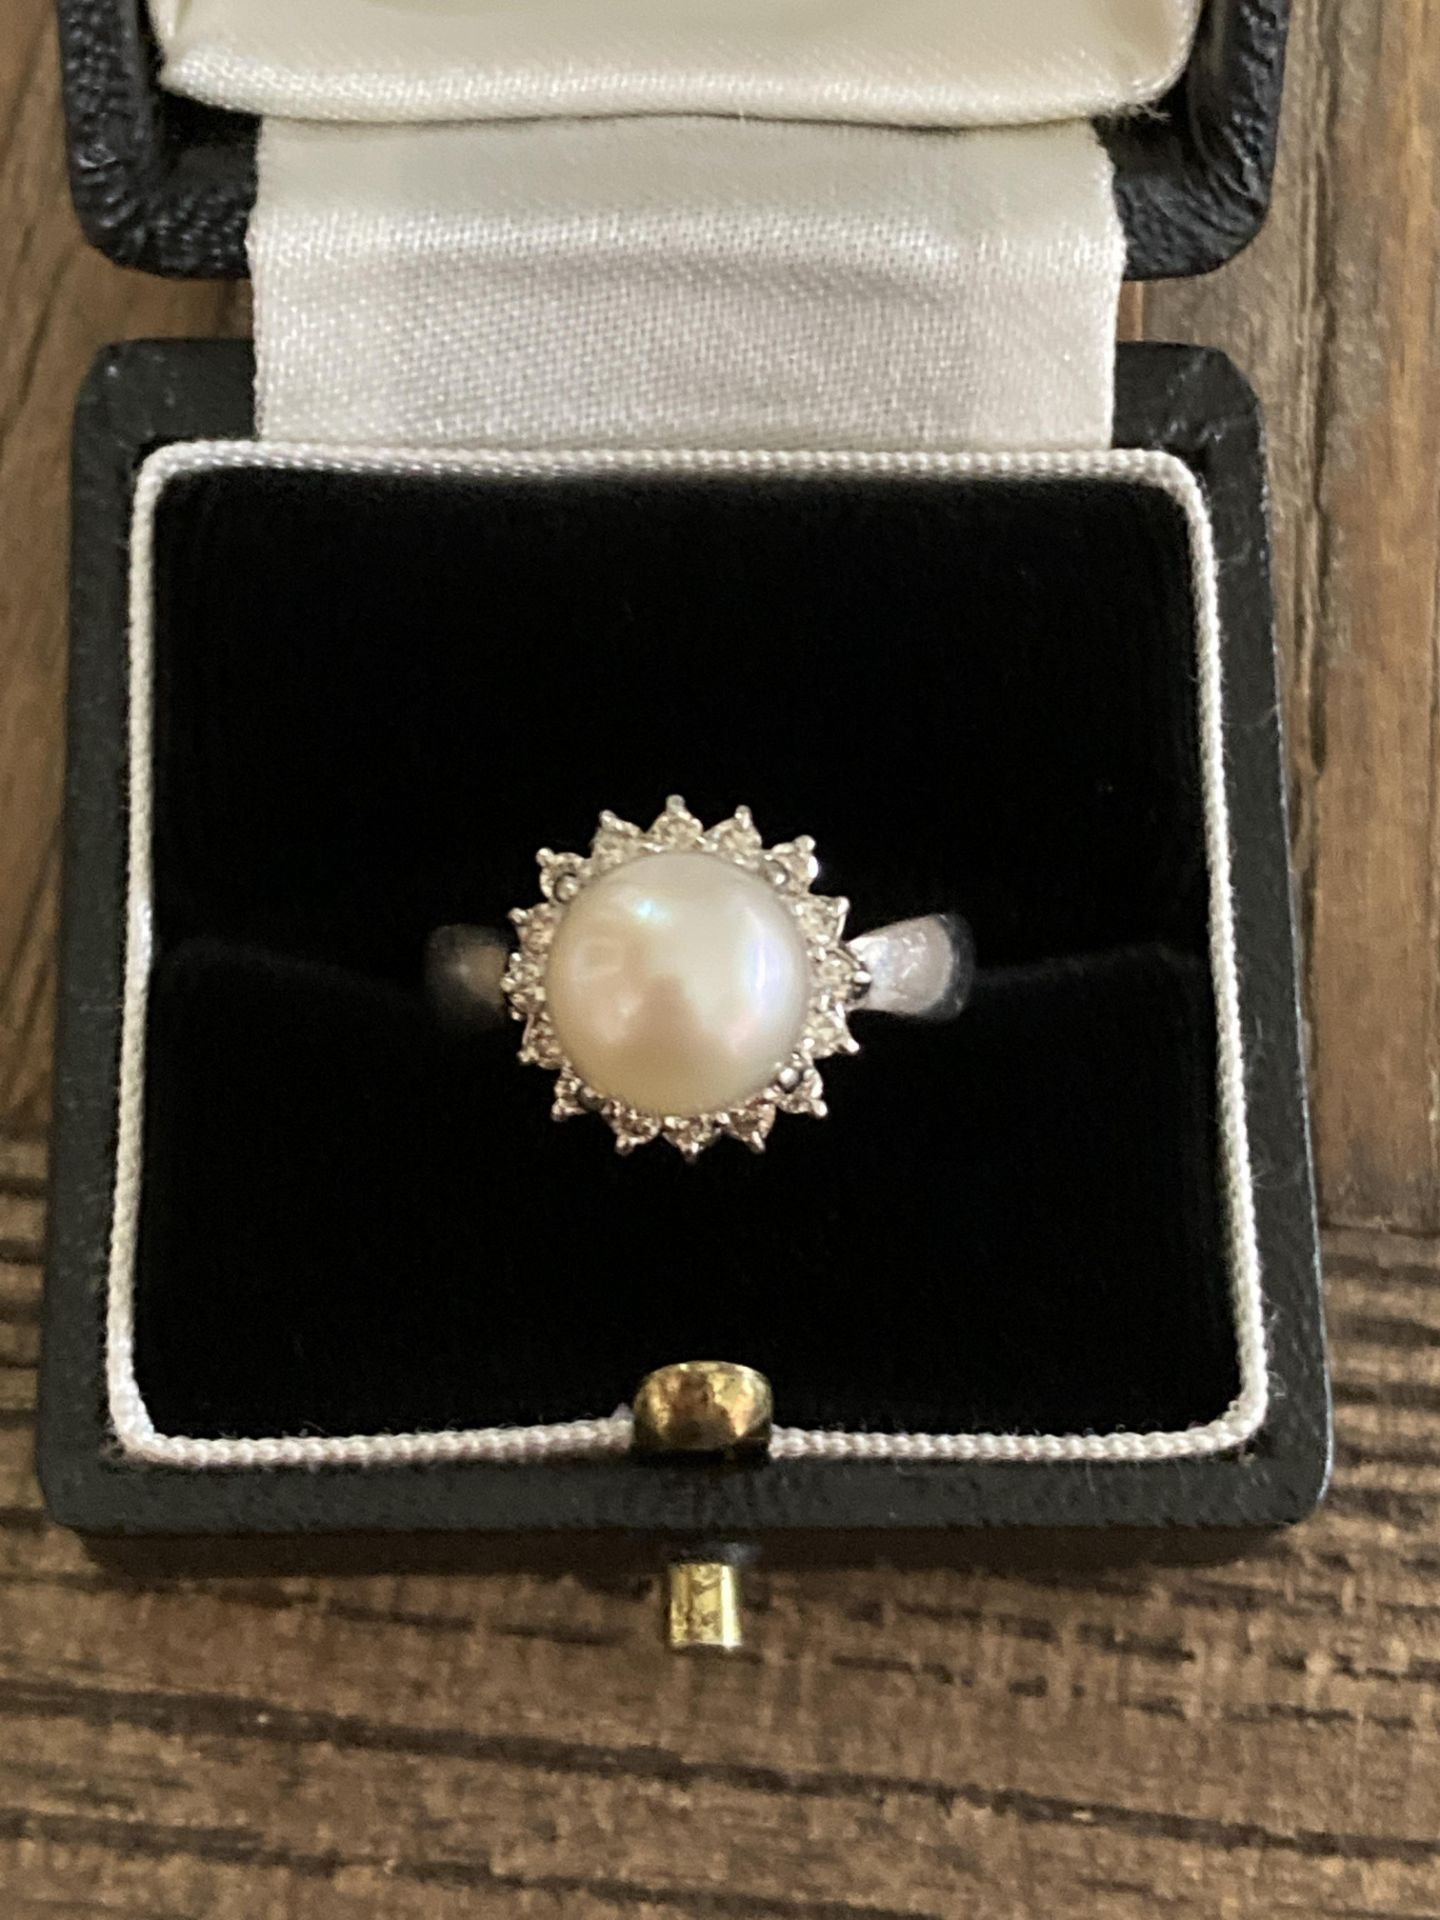 PLATINUM CULTURED PEARL & DIAMOND RING - SIZE: P, WEIGHT: 6.2G - Image 2 of 4